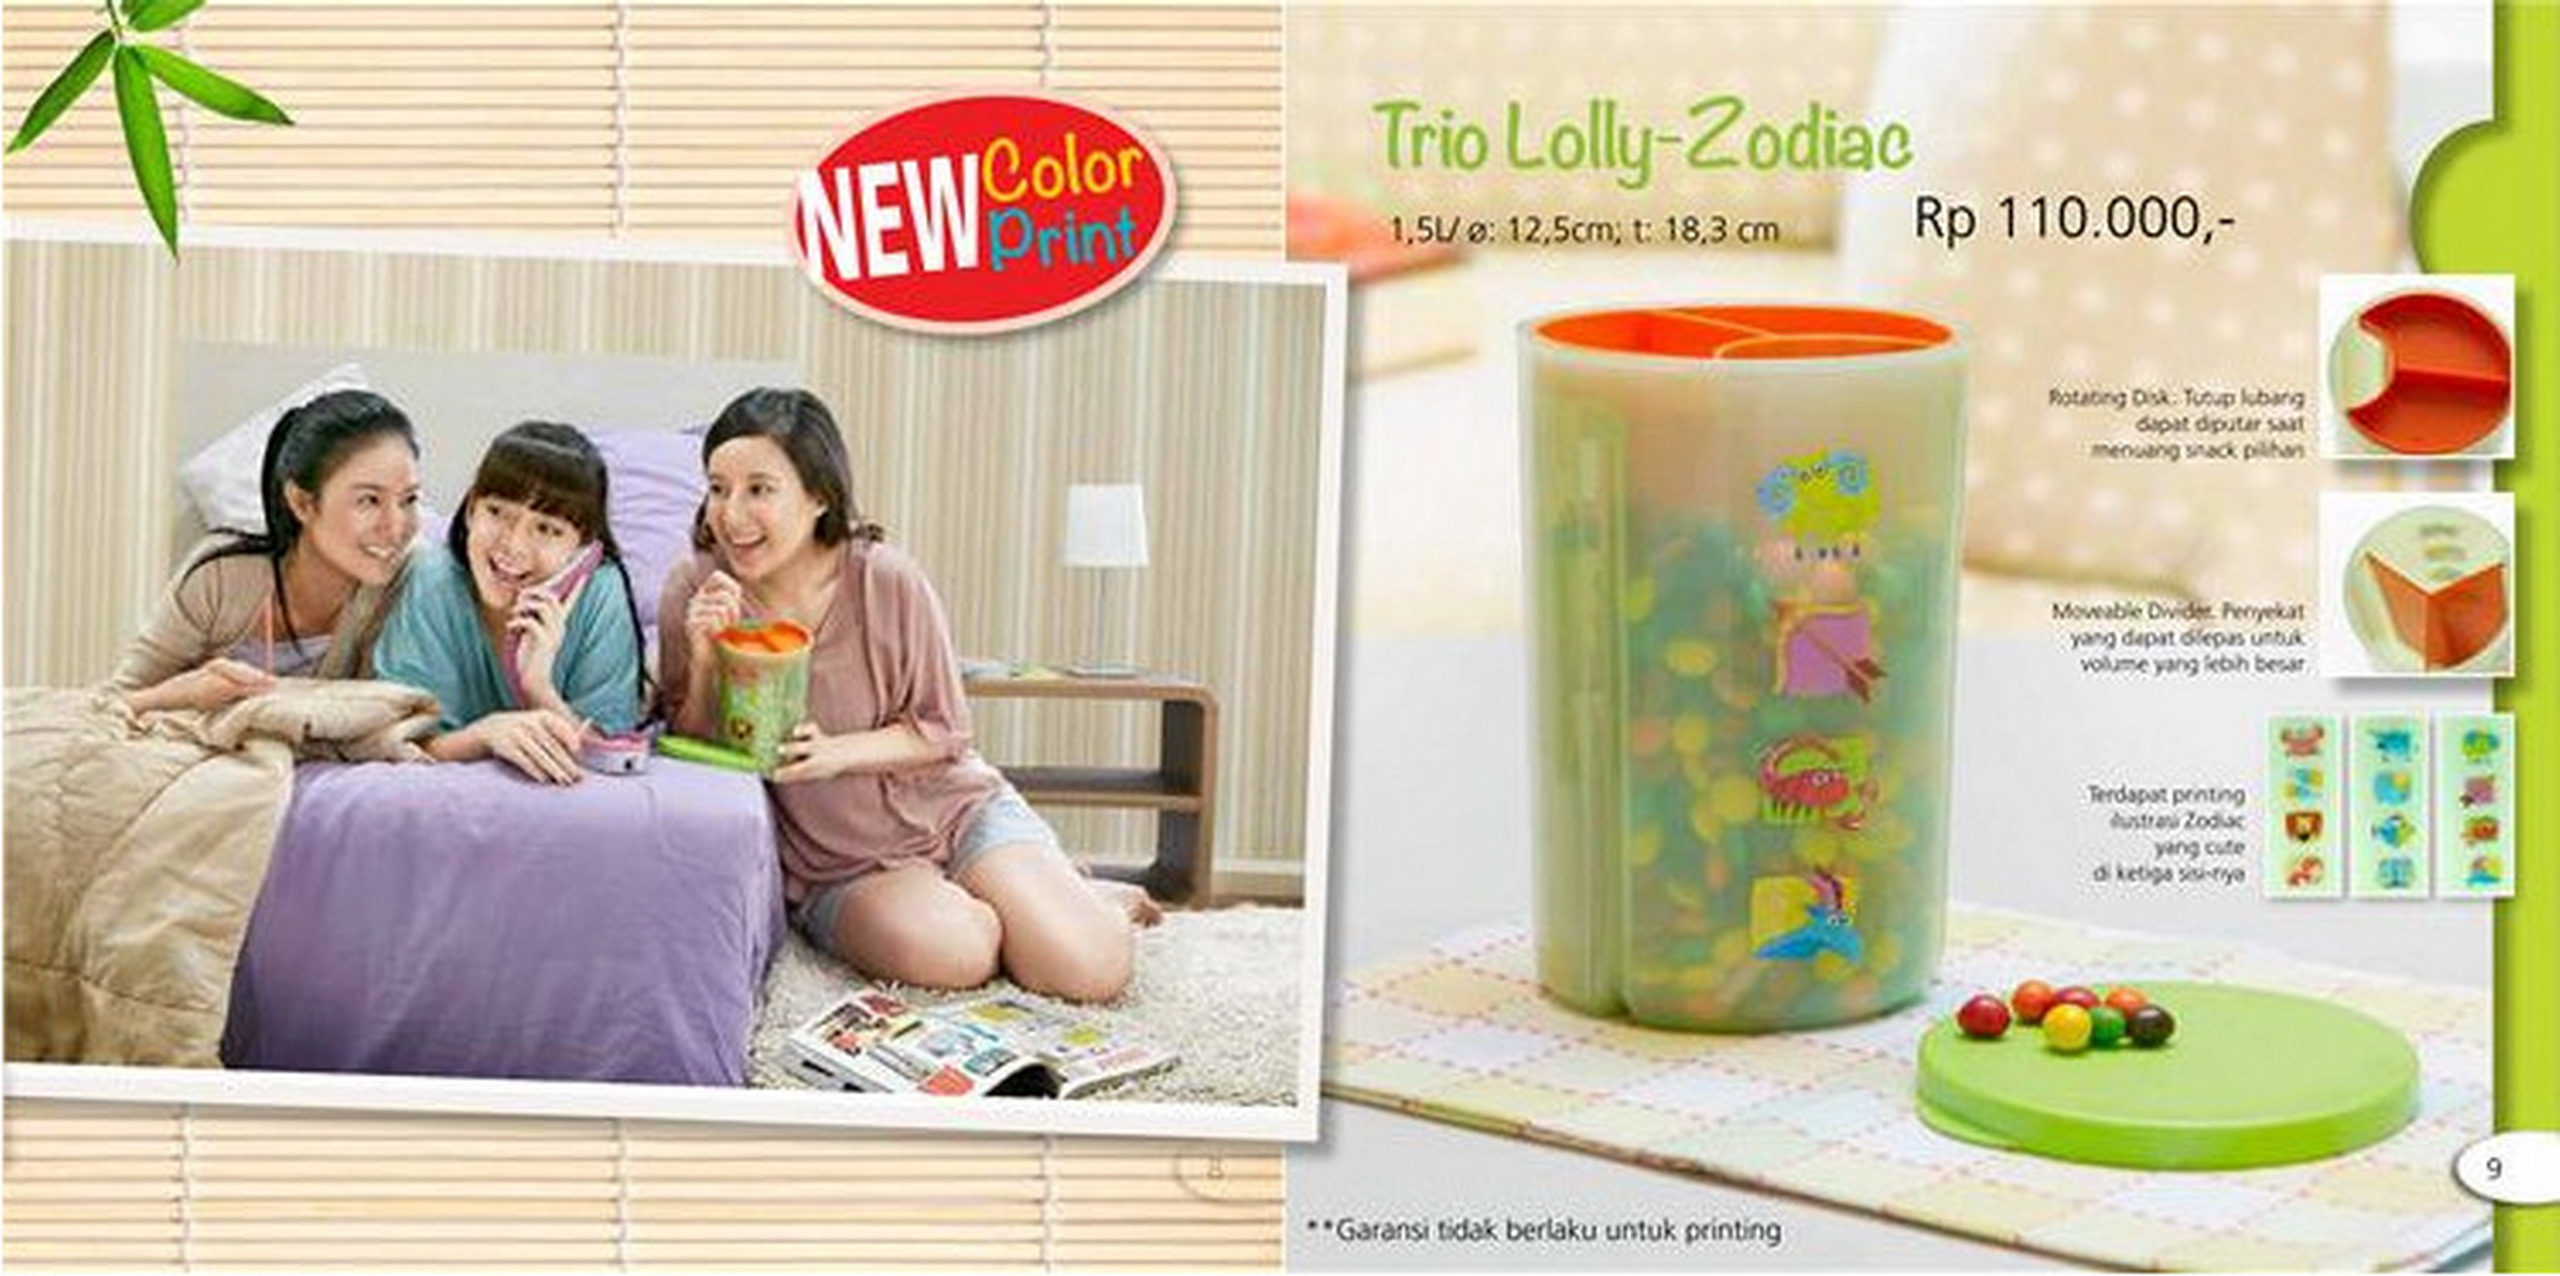 http://freetupperware.files.wordpress.com/2013/08/tupperware-trio-lolly-zodiac.jpg